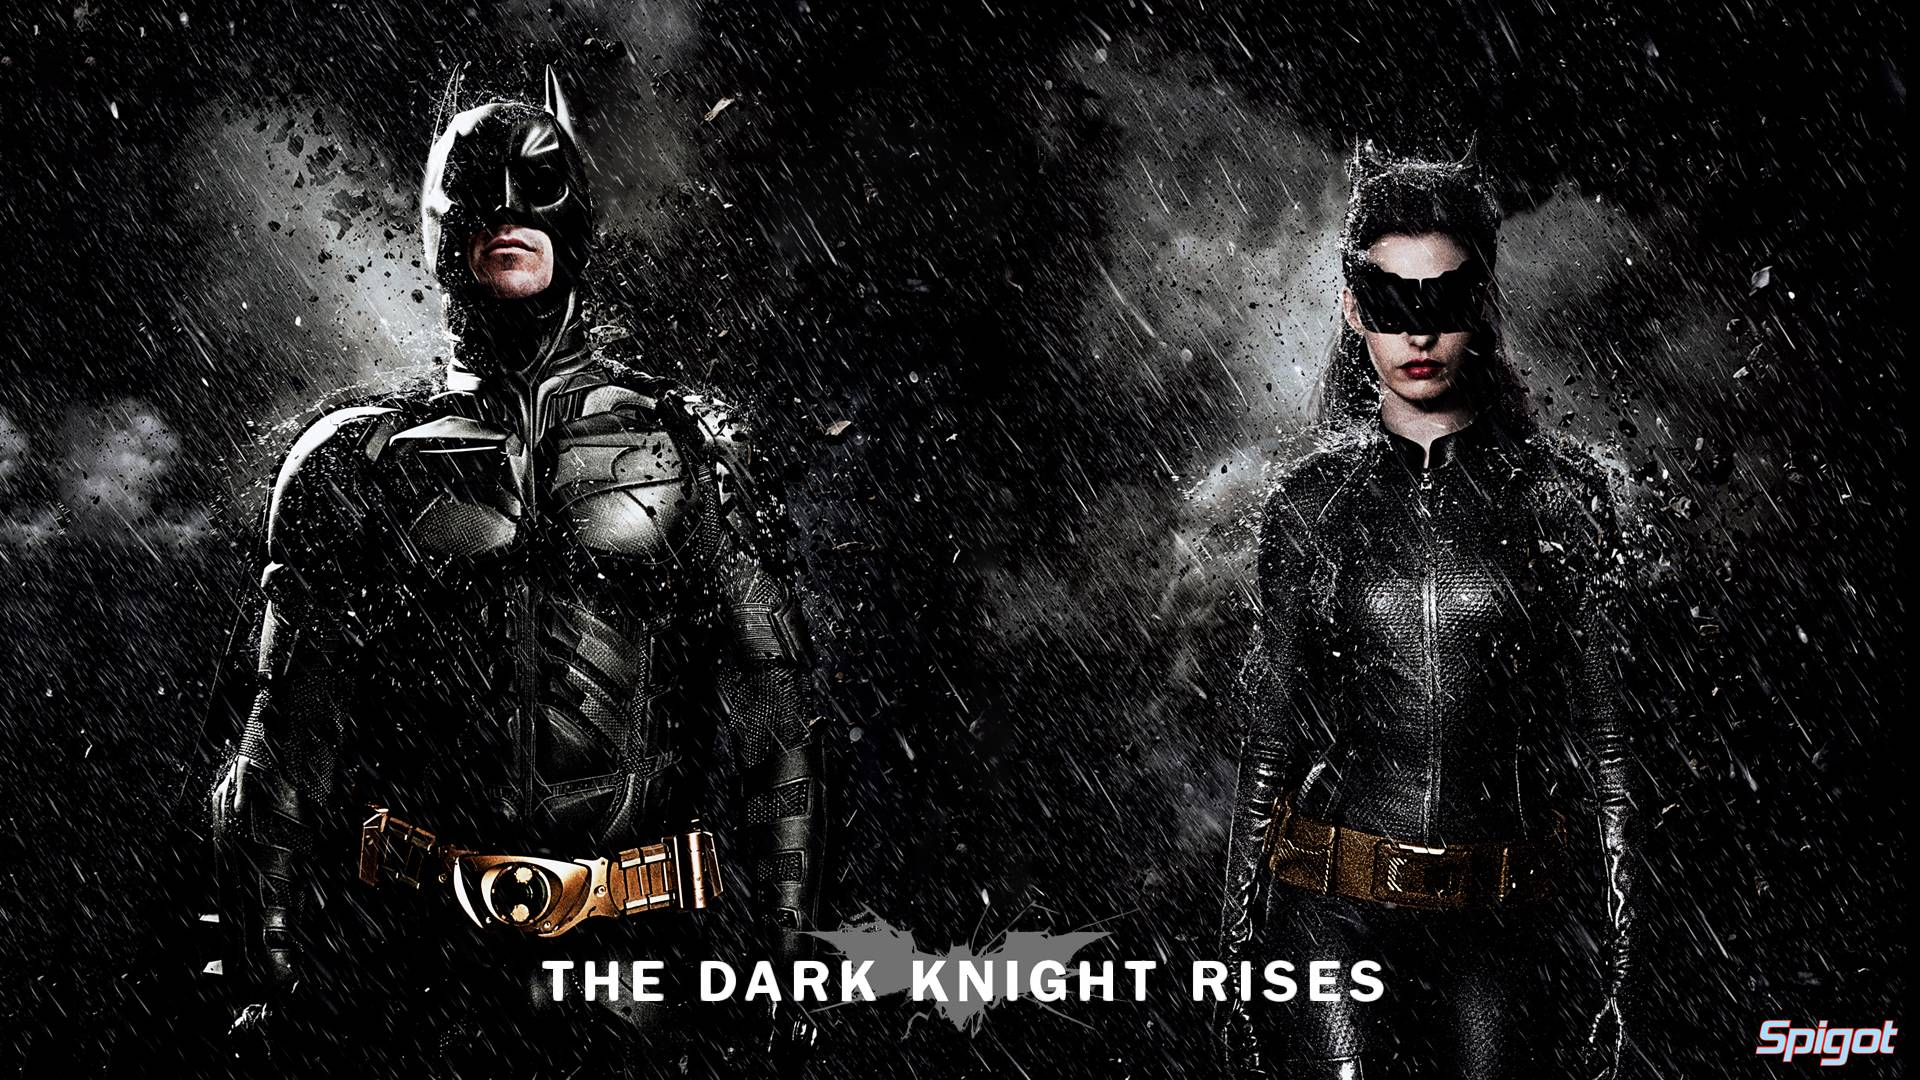 HD Dark Knight Rises Wallpapers - Wallpaper Cave